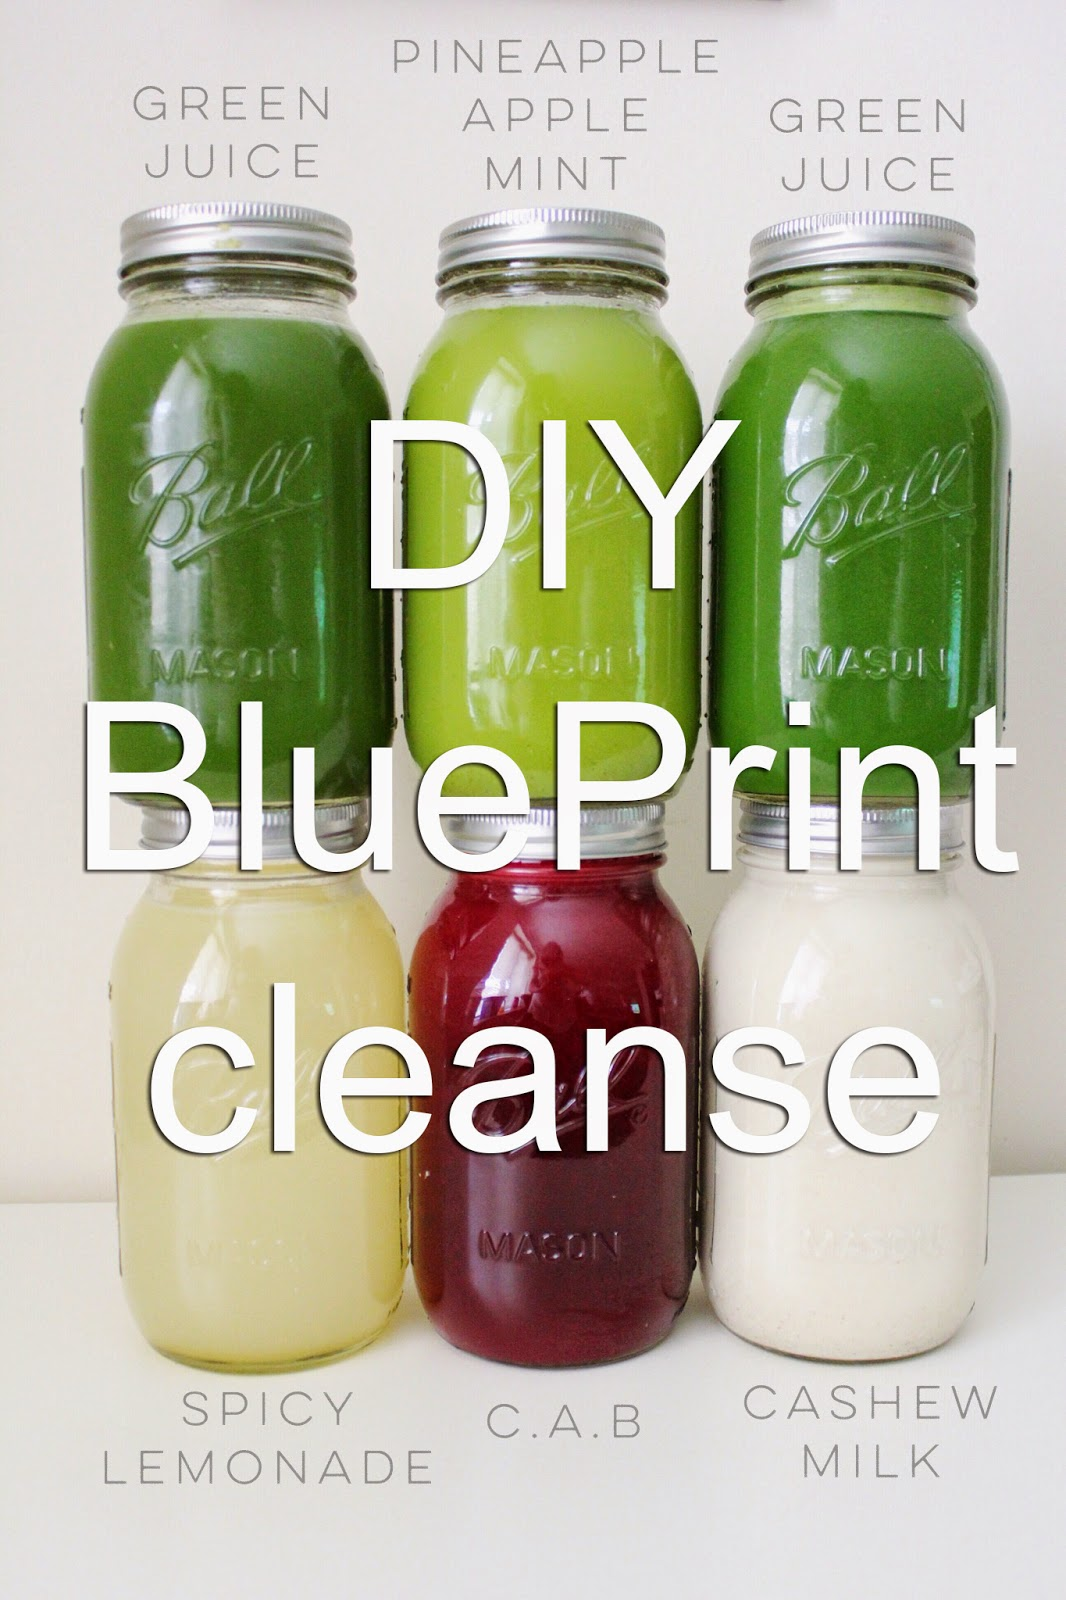 Updated diy blueprint cleanse sandras studio a while back i created a diy blueprint cleanse a juicing detox that you can do at home without spending so much money on these juices 195 for this 3 day malvernweather Choice Image